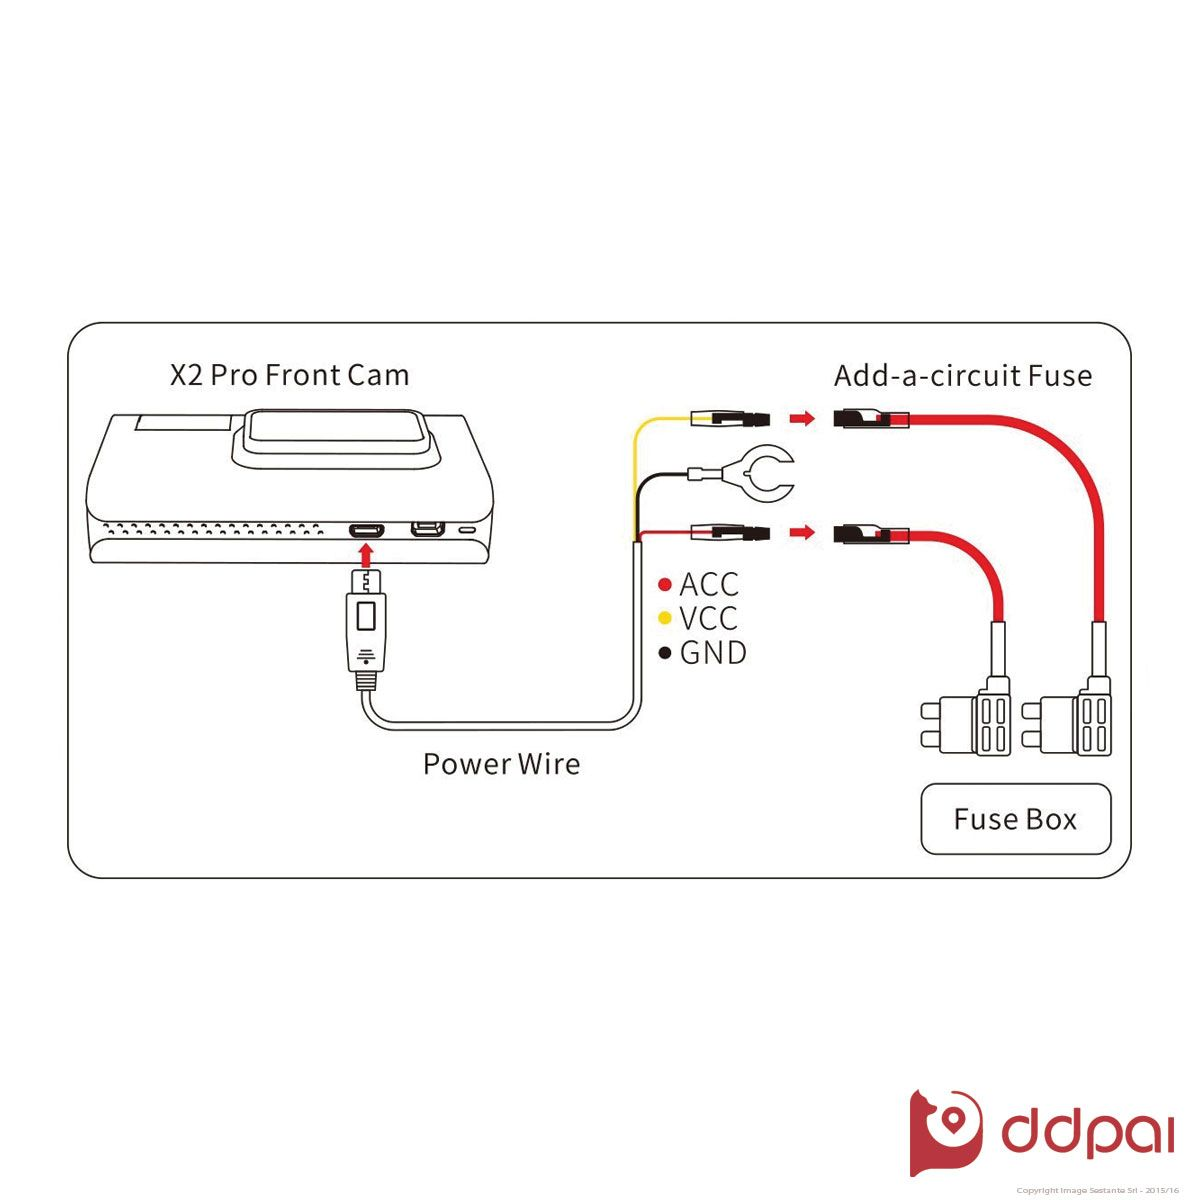 ddpai x2 pro add-a-fuse cable kit